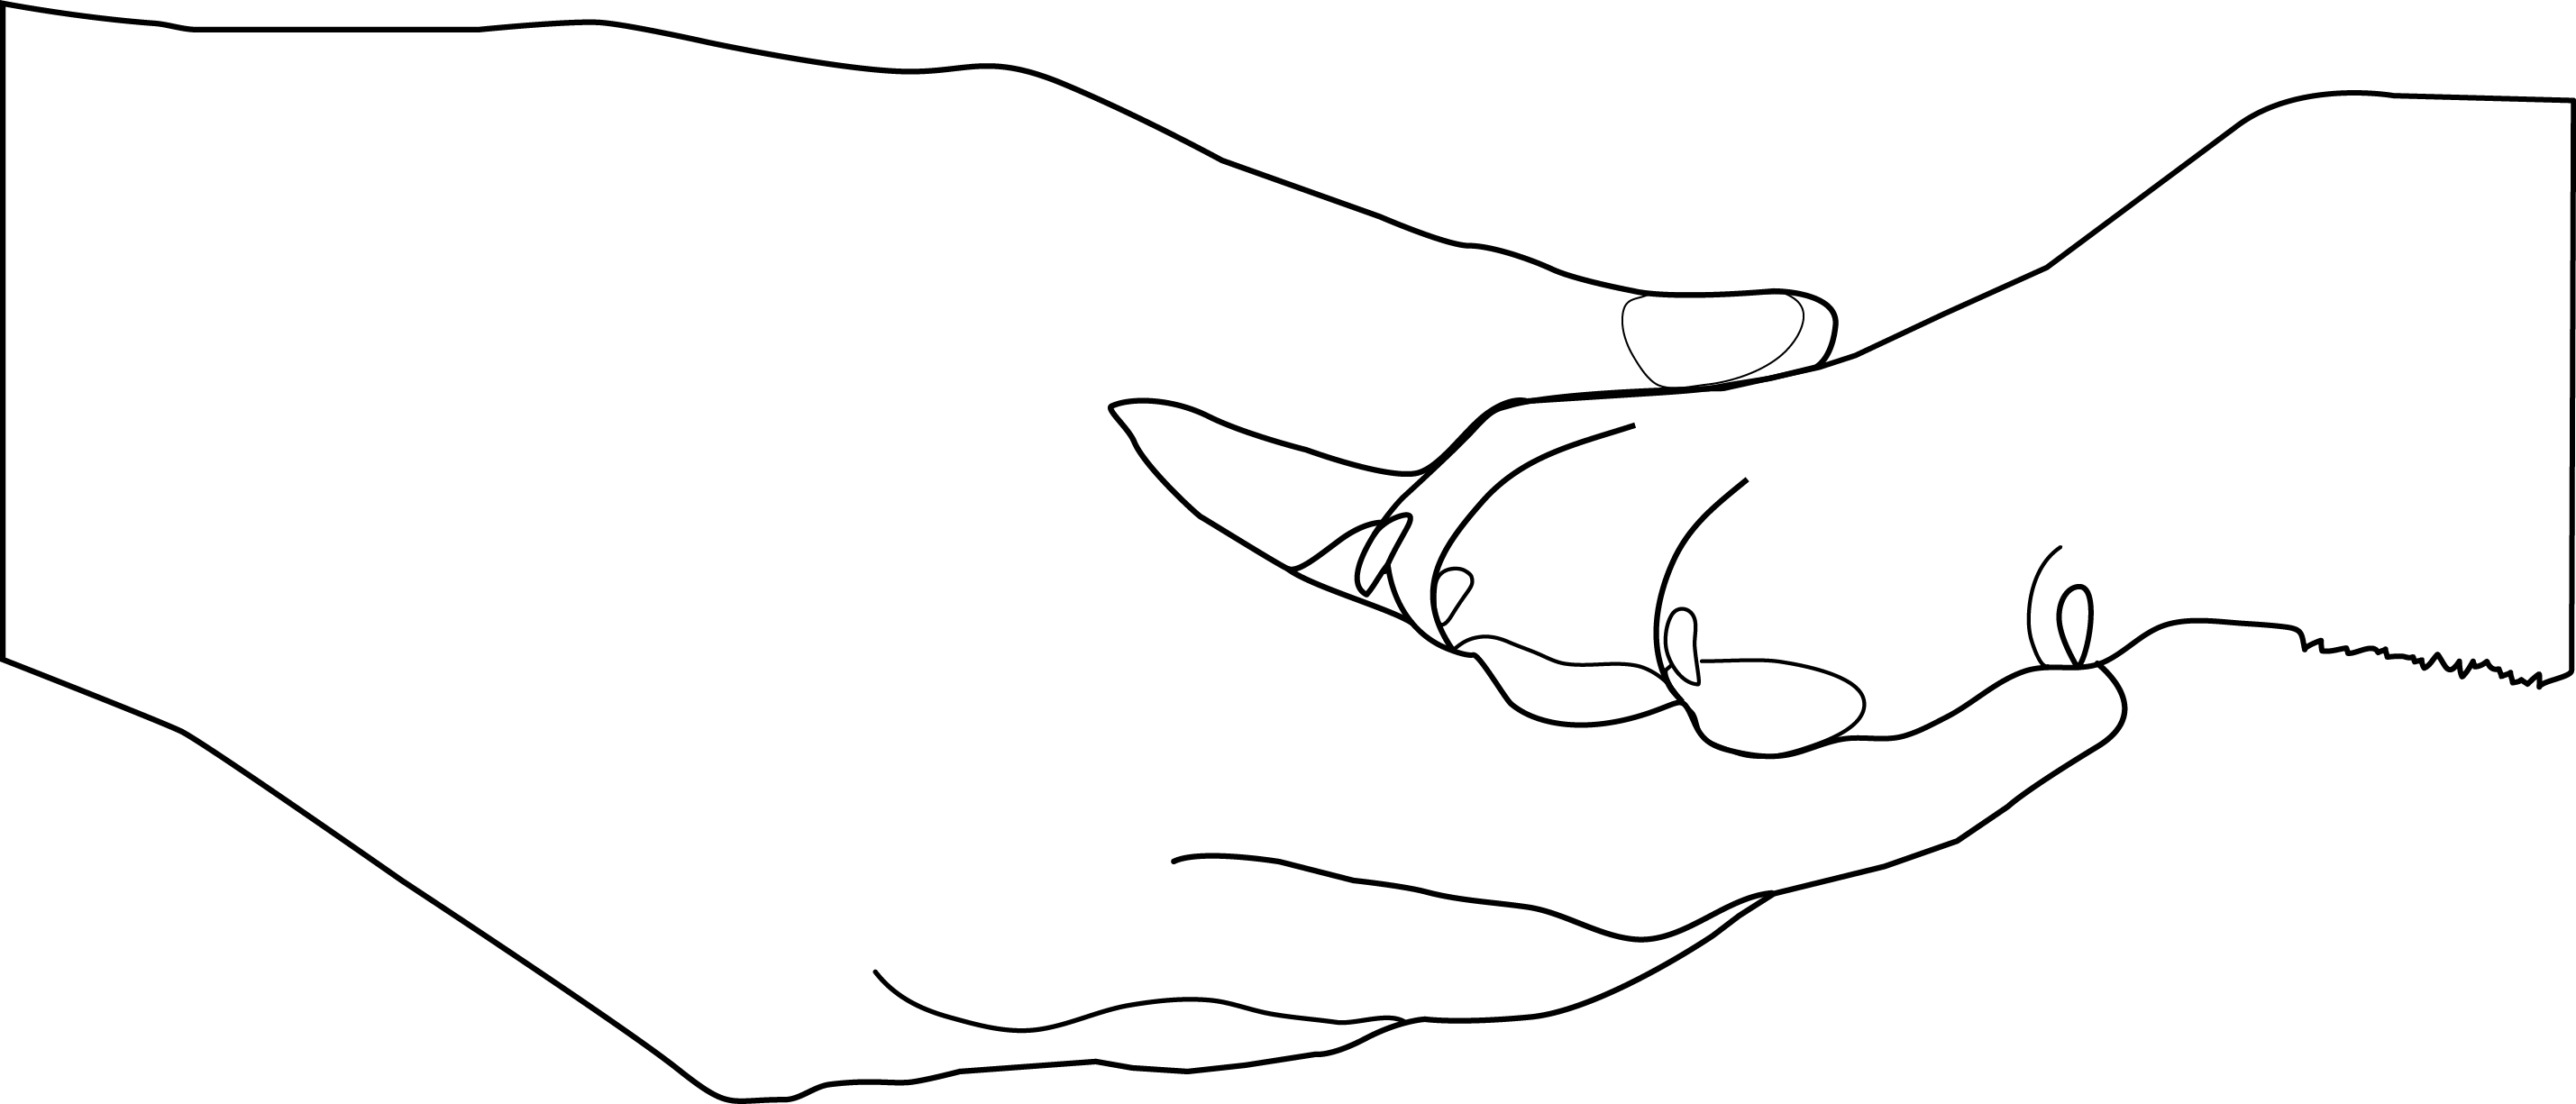 Free Paw Outline Download Free Clip Art Free Clip Art On